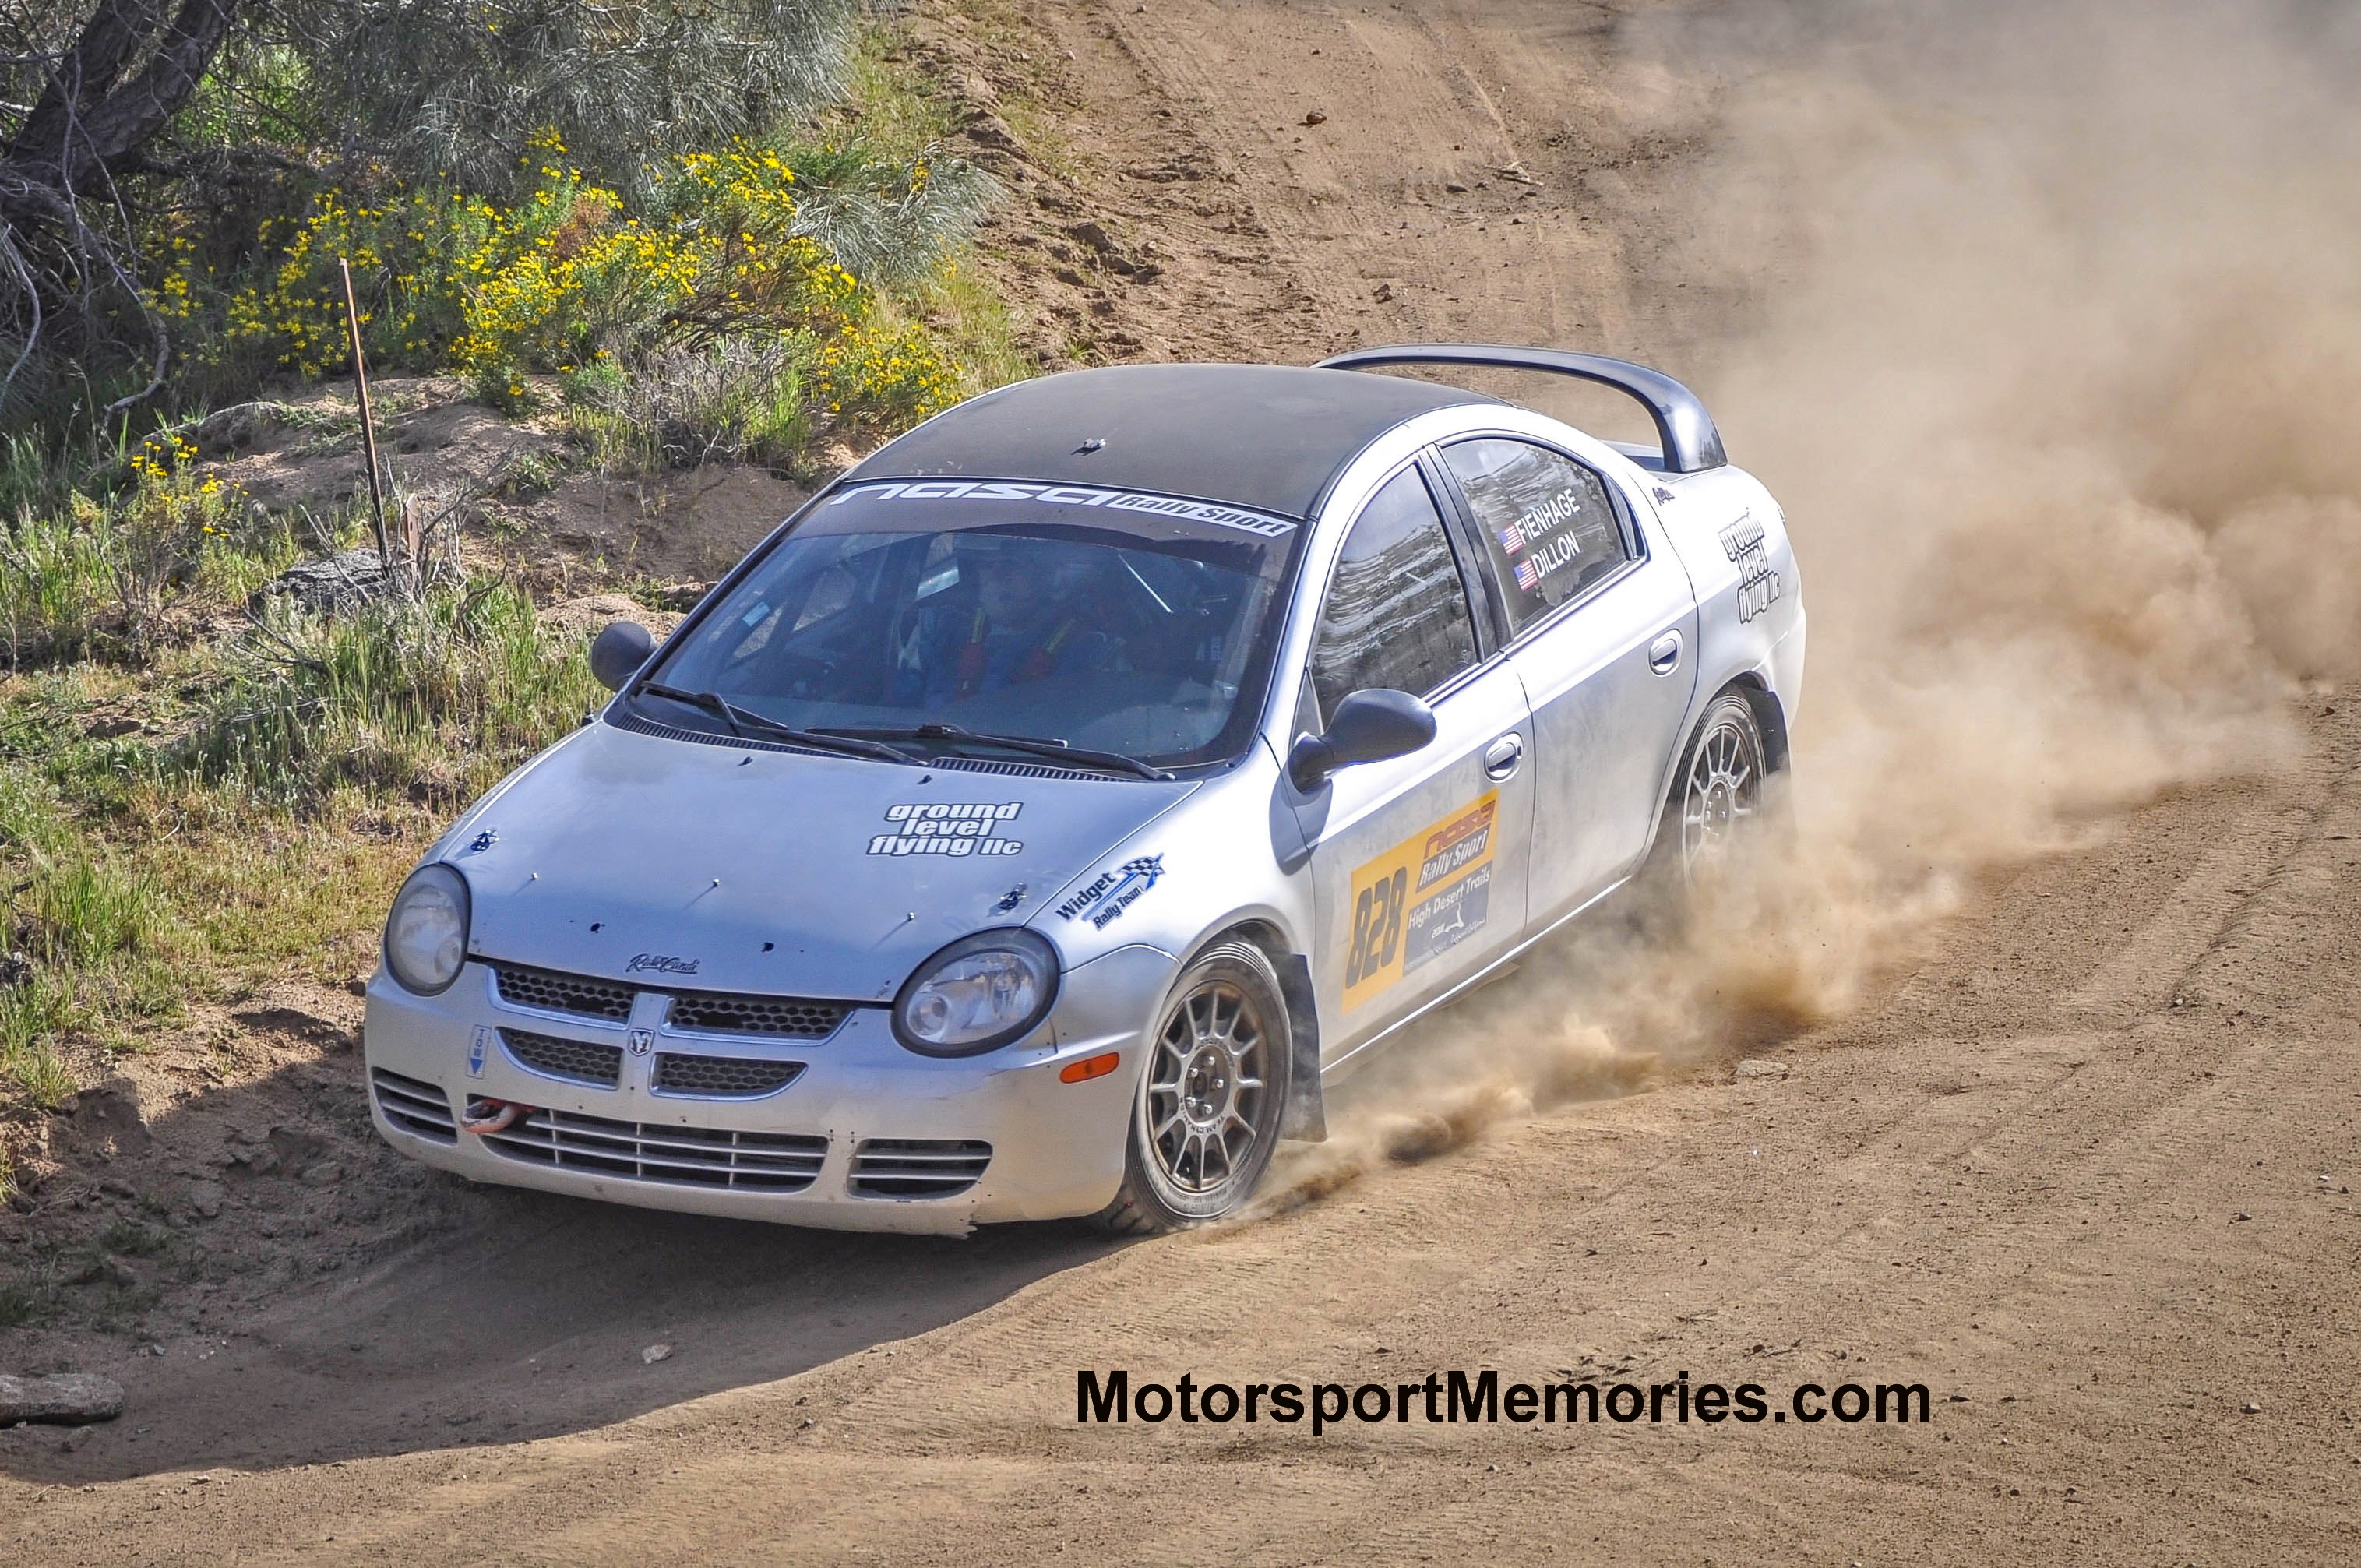 Welcome to the California Rally Series